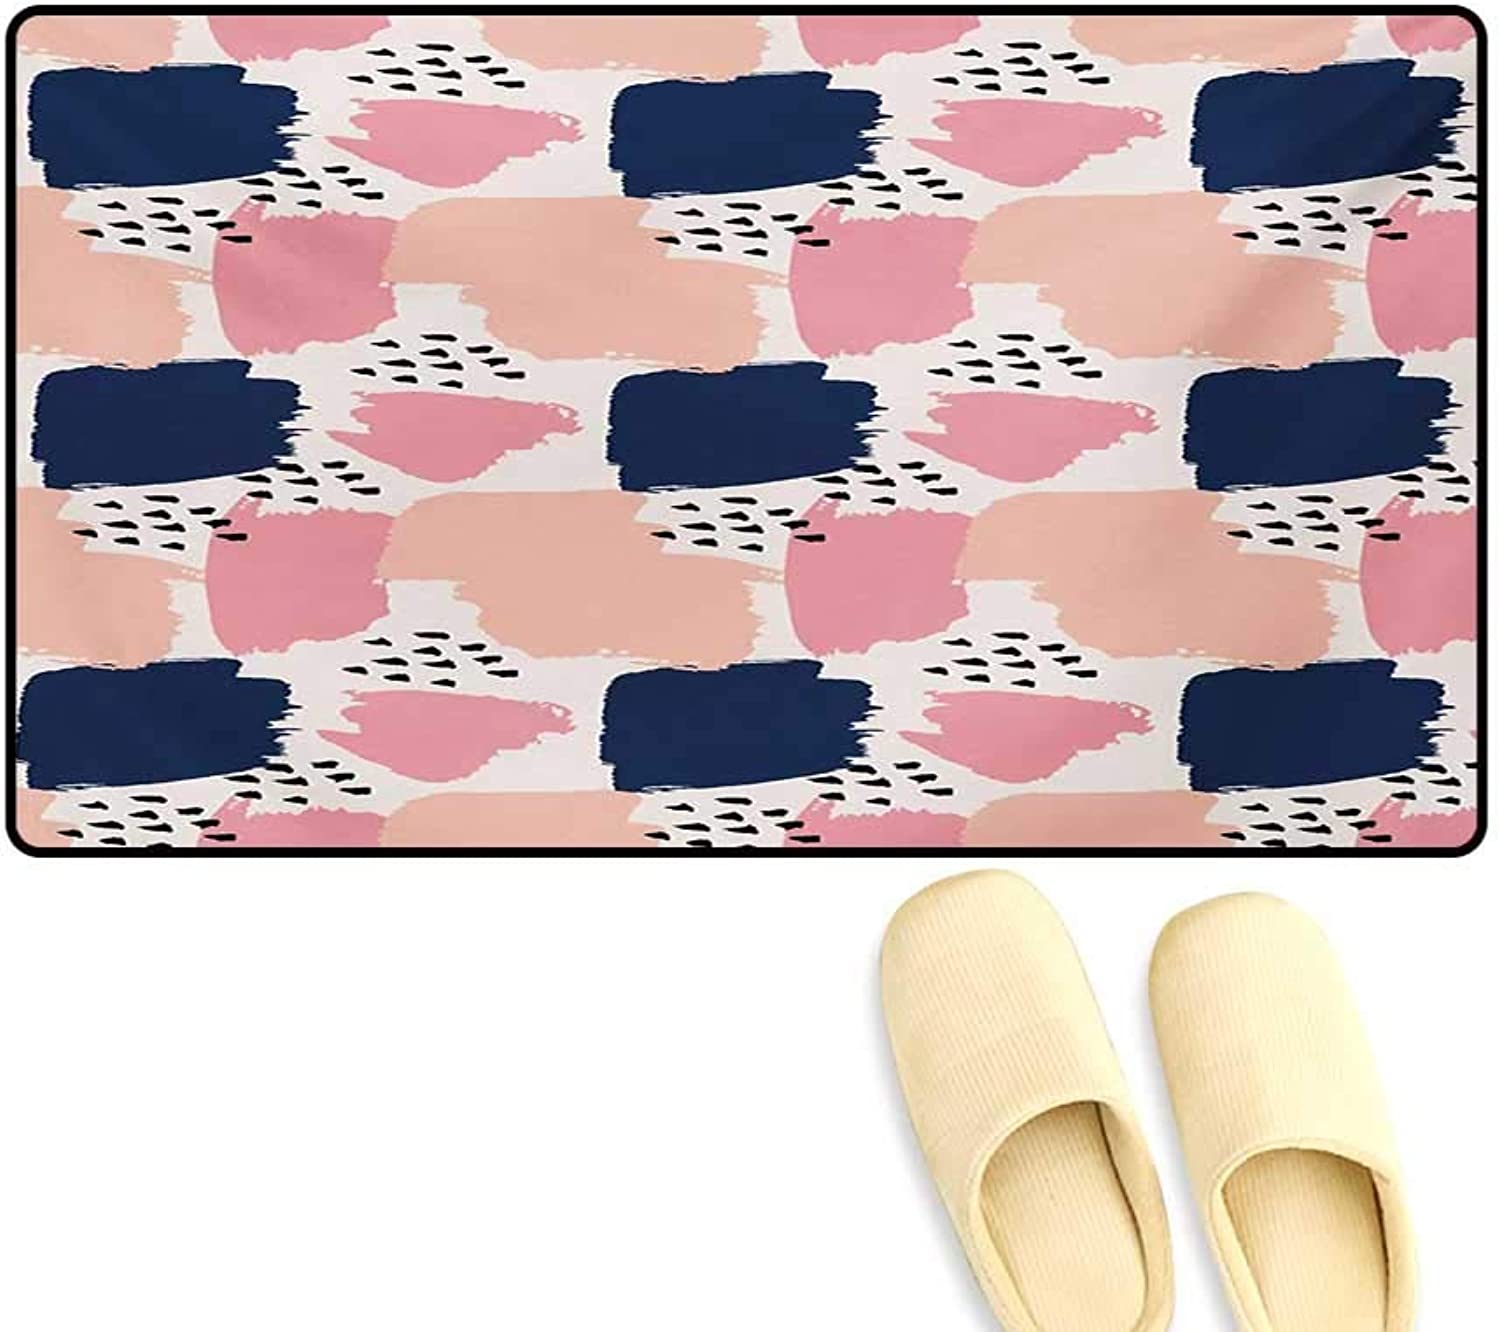 Door-mat,Hand Painted Style Brushstrokes in Pastel colors Abstract Artistic Pattern,Door Mats for Inside Bathroom Mat Non Slip,Multicolor,24 x36